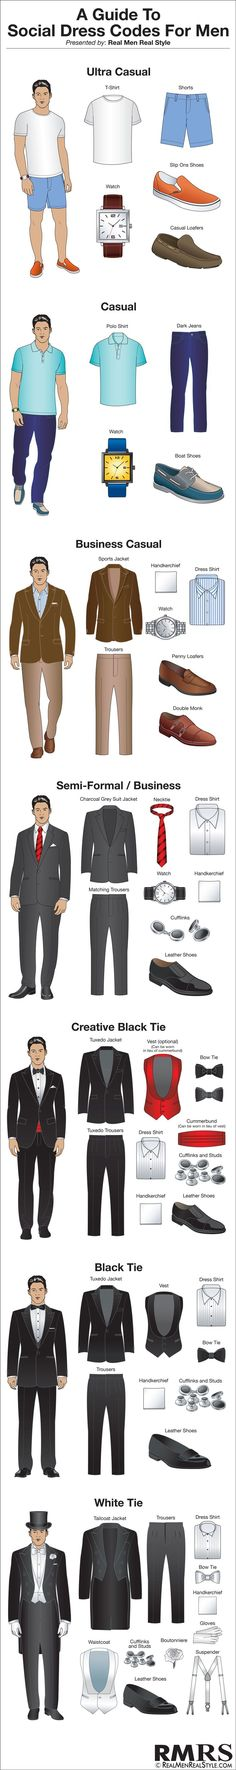 A Guide To Social Dress Codes For Men Explained.